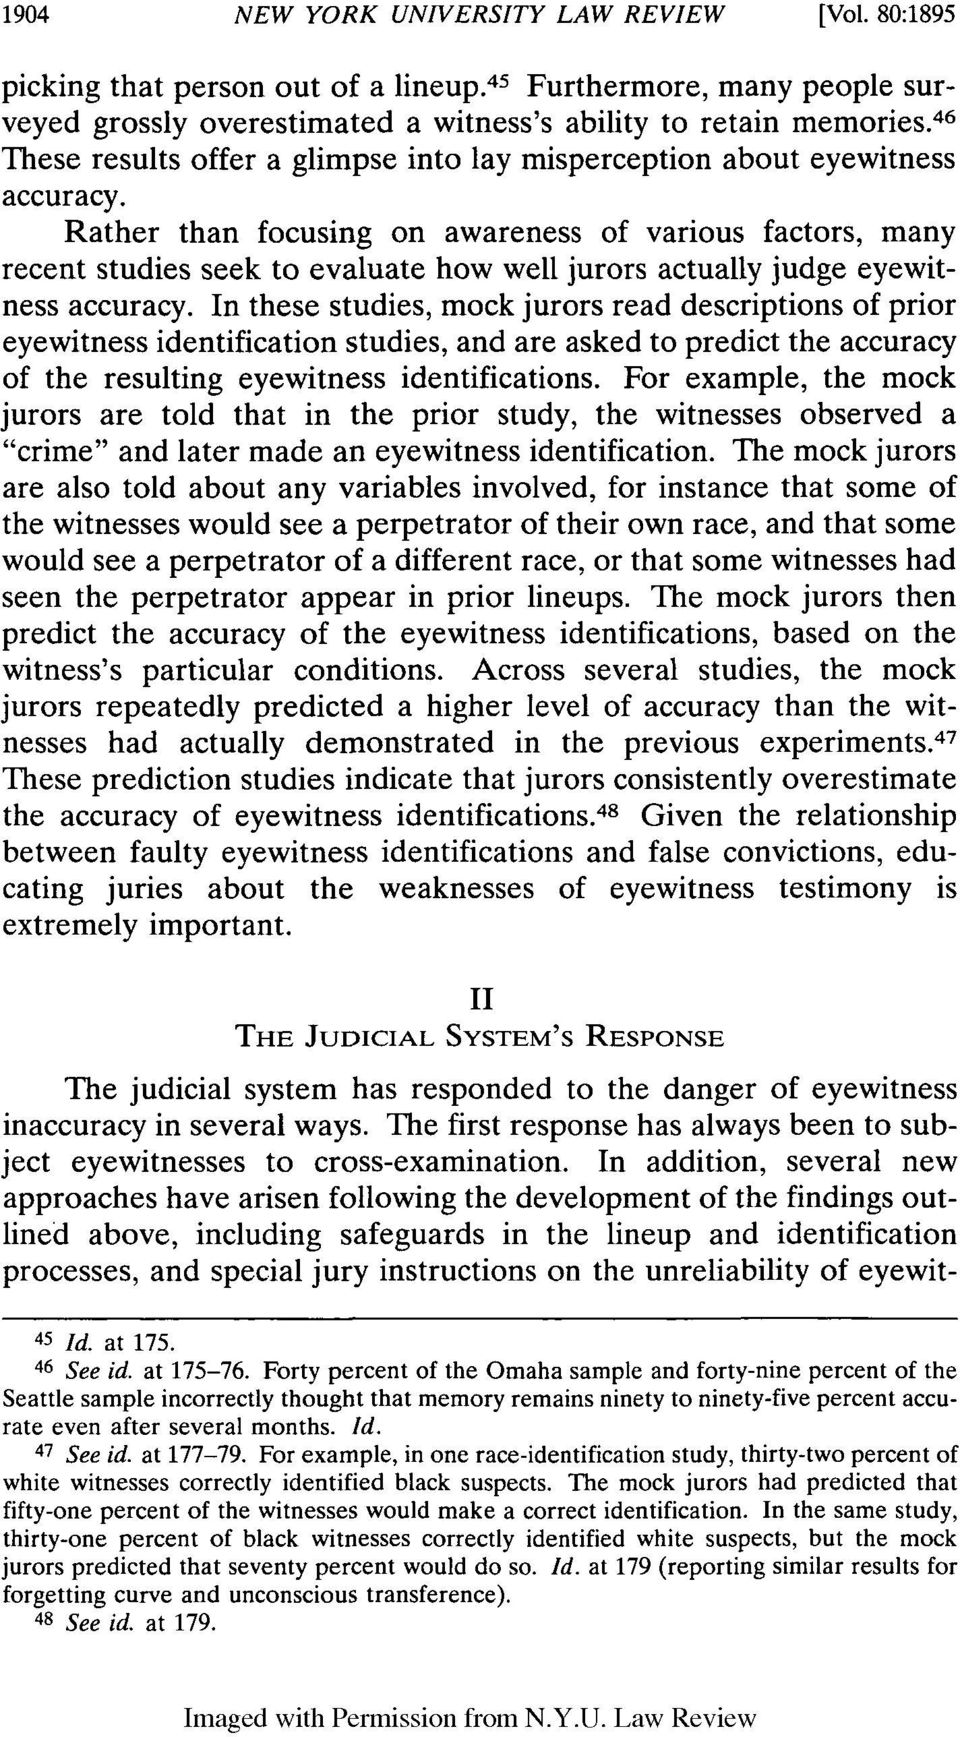 Rather than focusing on awareness of various factors, many recent studies seek to evaluate how well jurors actually judge eyewitness accuracy.